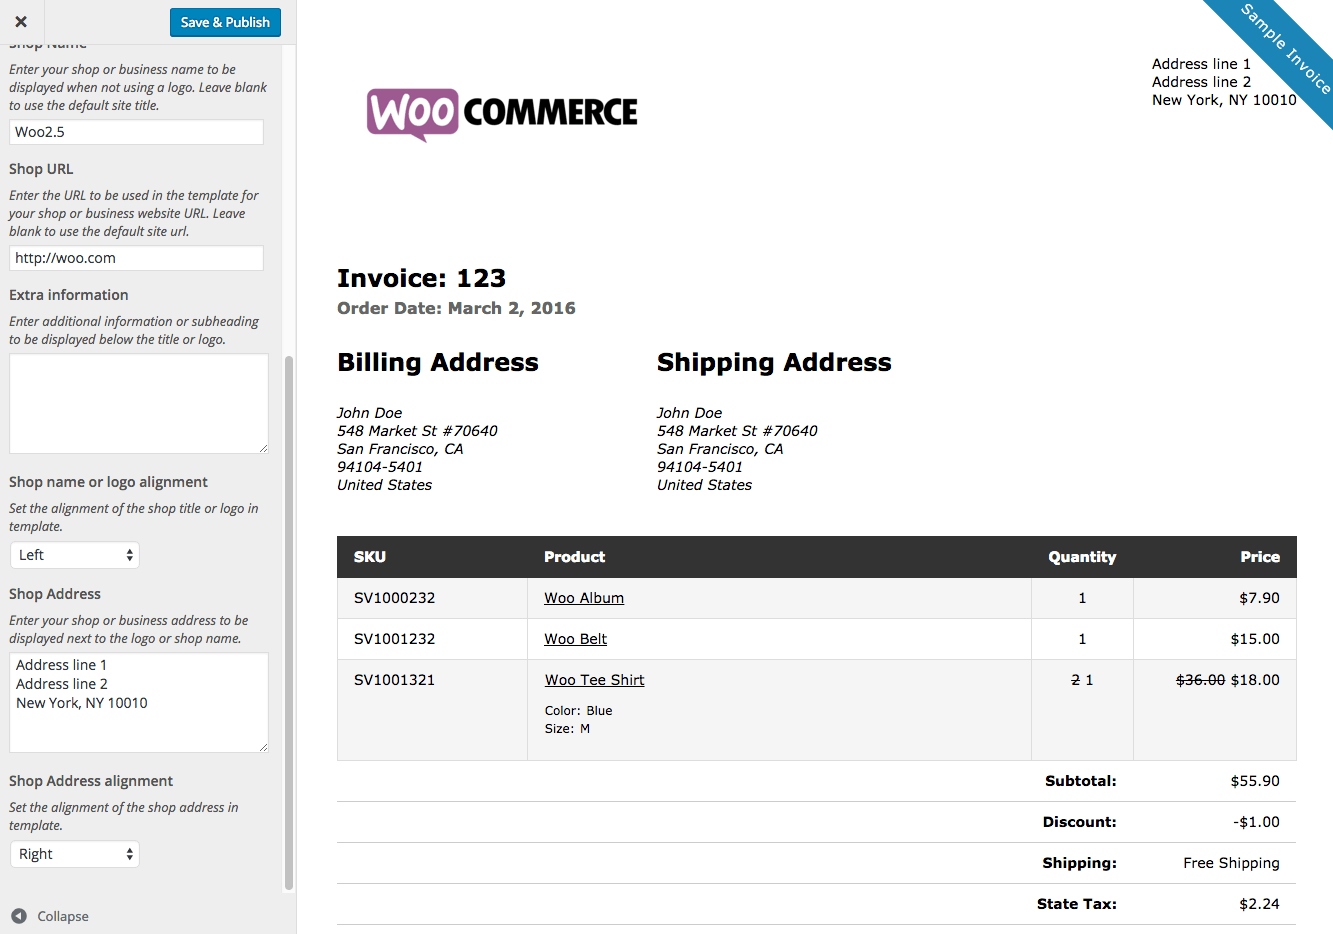 Modaoxus  Scenic Woocommerce Print Invoices Amp Packing Lists  Woocommerce Docs With Heavenly Woocommerce Print Invoices  Packing Lists Customizer With Delectable Close Invoice Finance Ltd Also Performa Invoice Template In Addition Publisher Invoice Template And How To Make A Tax Invoice As Well As Free Invoice Word Template Additionally Vtiger Invoice From Docswoocommercecom With Modaoxus  Heavenly Woocommerce Print Invoices Amp Packing Lists  Woocommerce Docs With Delectable Woocommerce Print Invoices  Packing Lists Customizer And Scenic Close Invoice Finance Ltd Also Performa Invoice Template In Addition Publisher Invoice Template From Docswoocommercecom